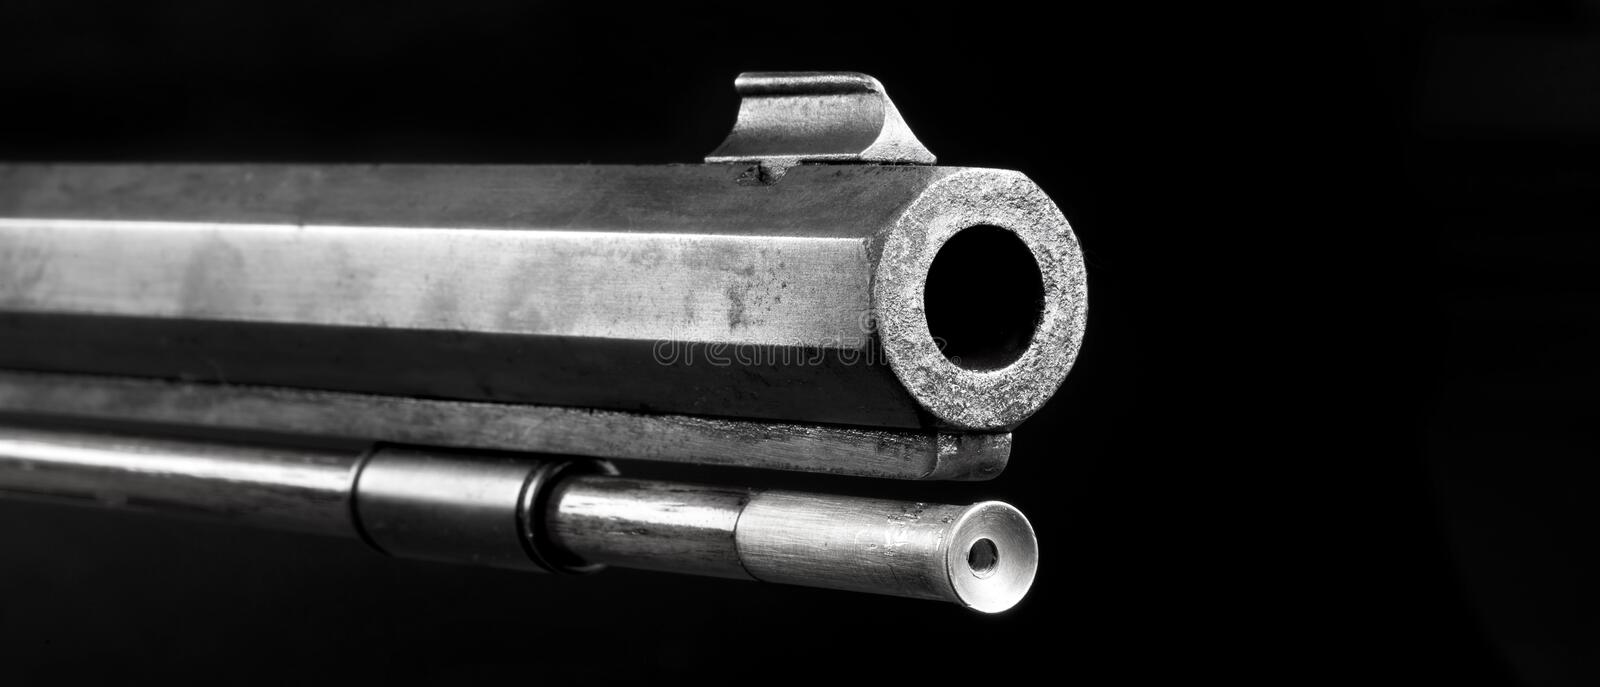 Black Powder Rifle Barrel. Front end of old 50 caliber black powder riflein black and white with room for your type royalty free stock images